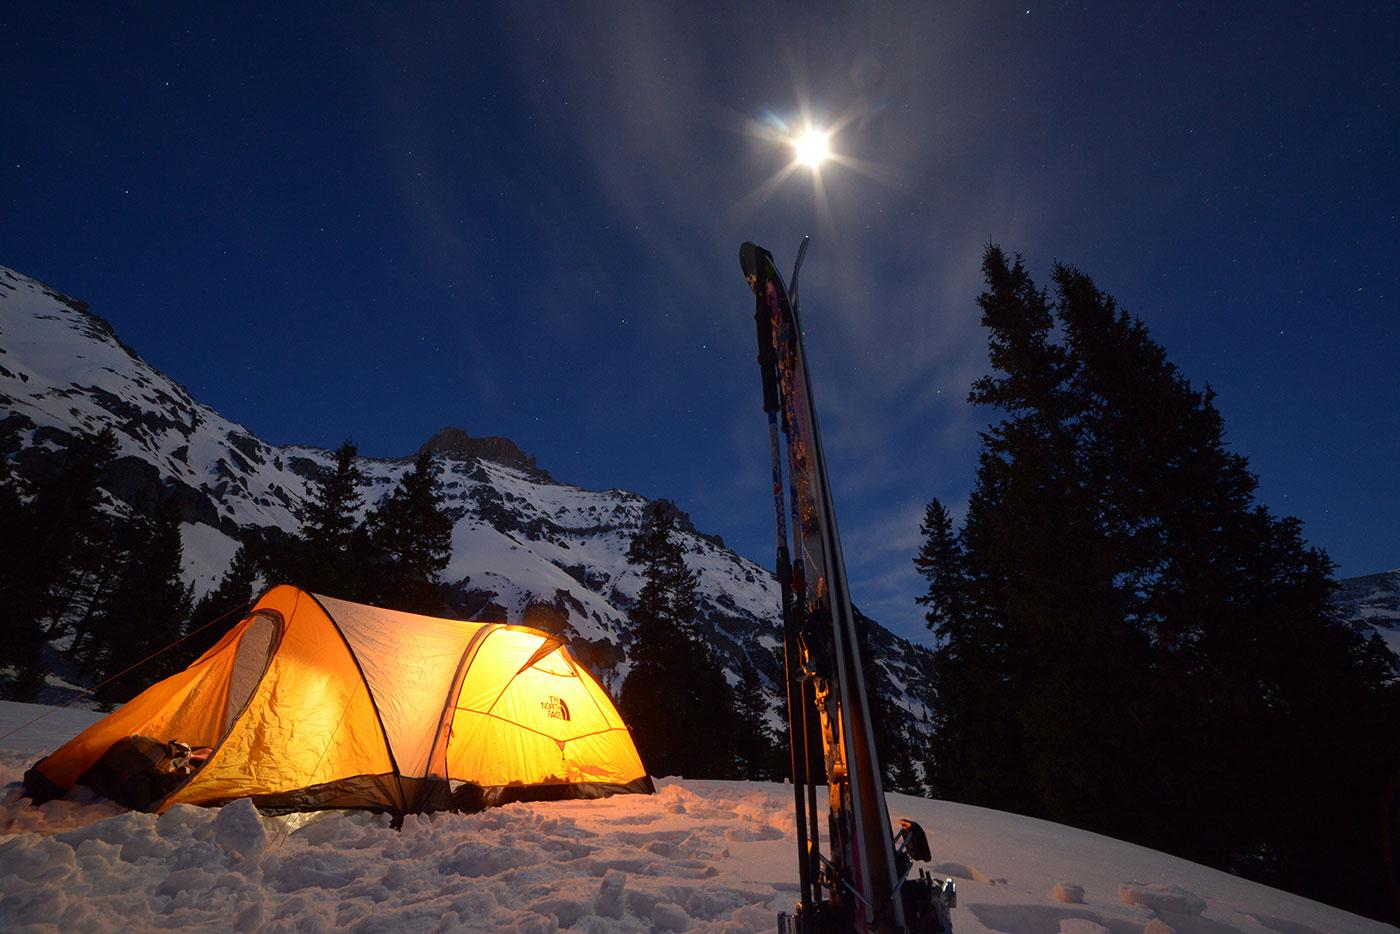 A nighttime camp for a skiing expedition in the Rocky Mountains. Photo: BBC